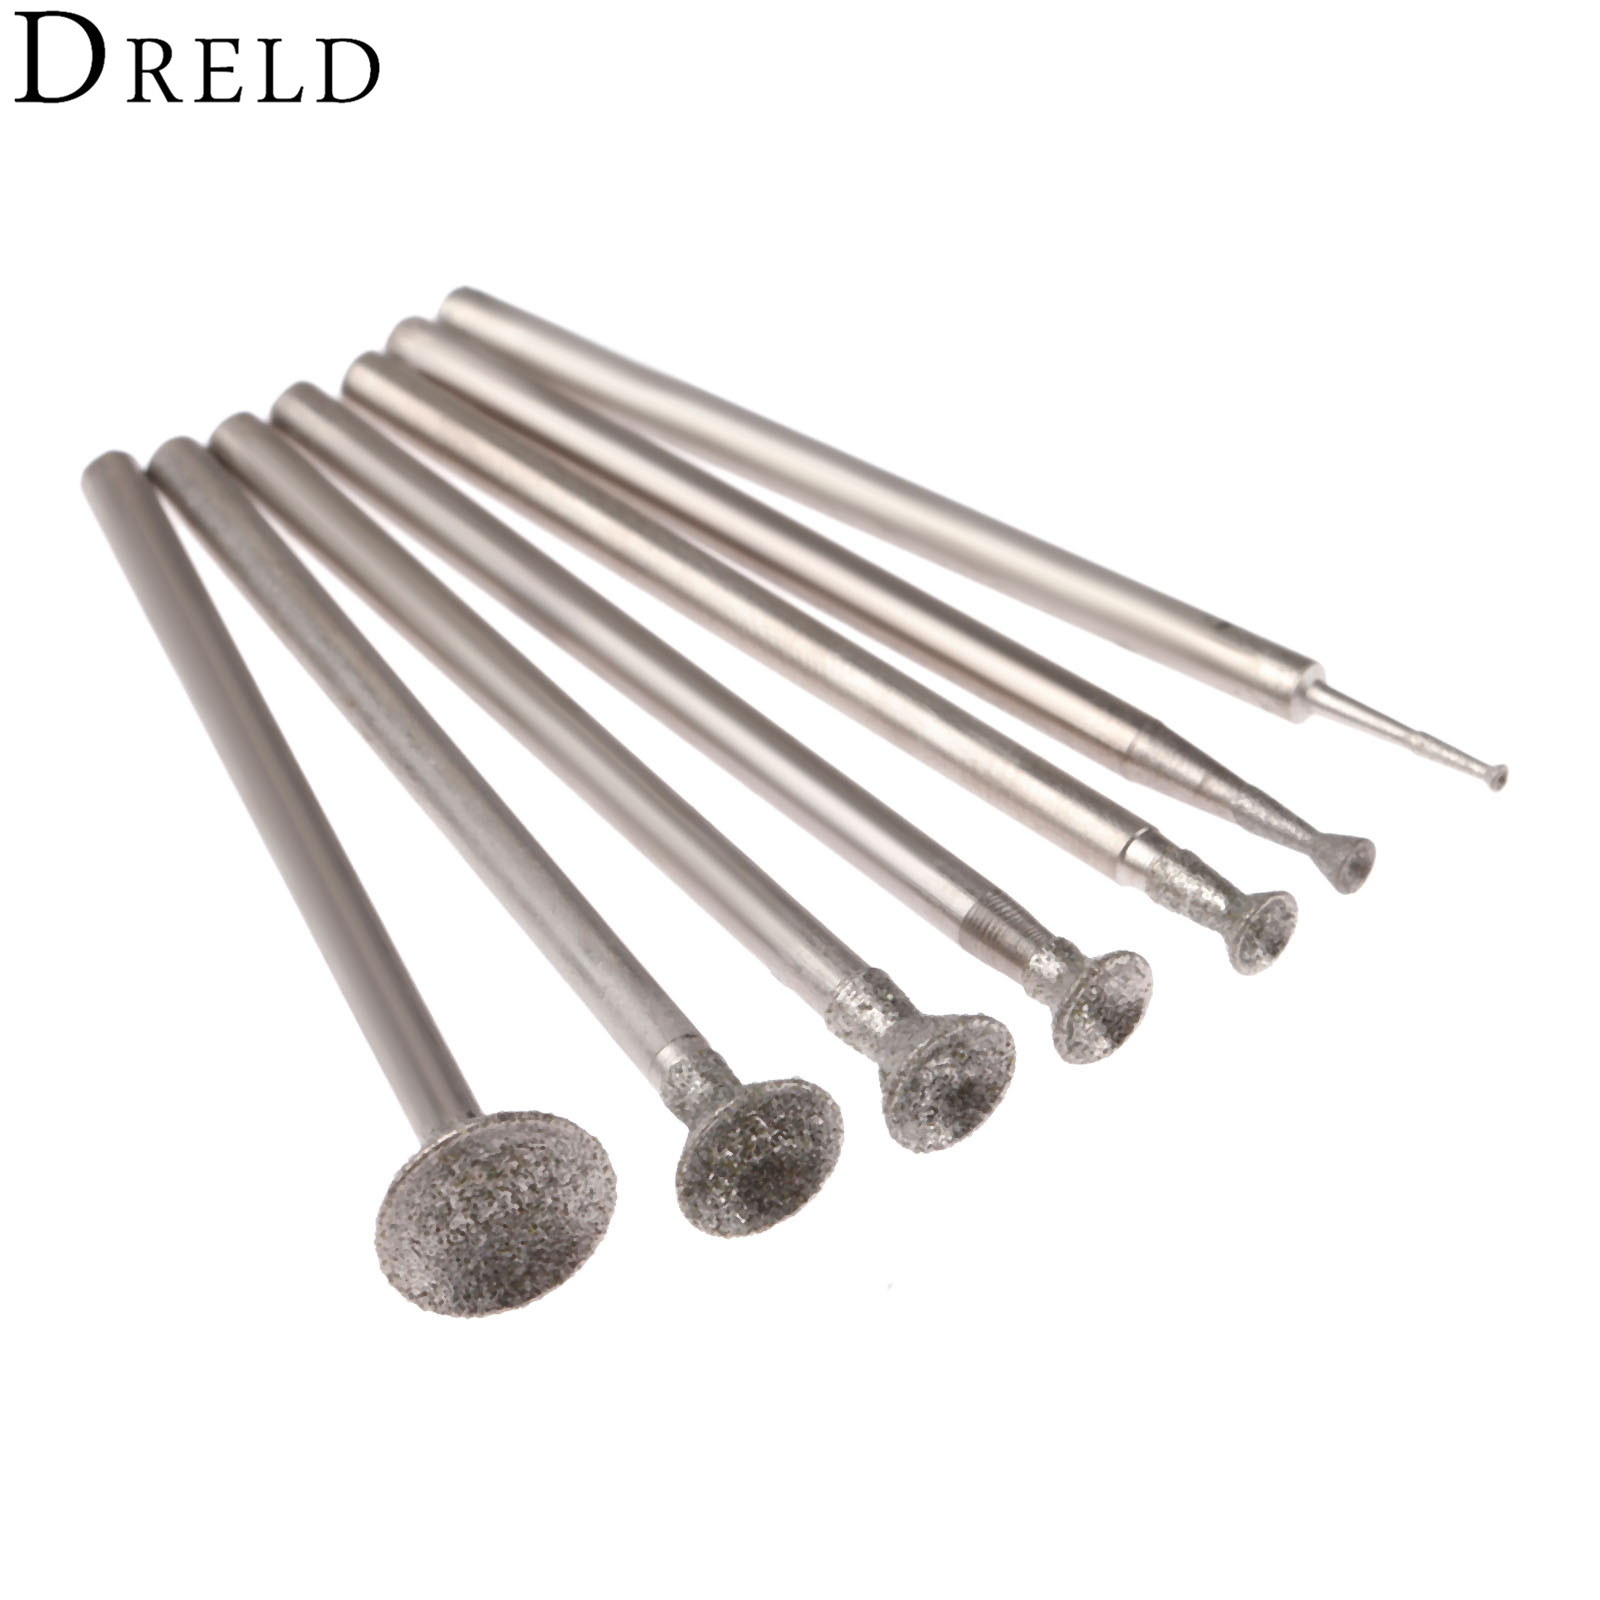 uxcell Diamond Mounted Points 6mm Cylinder Head 1//8 Inch Shank Grinding Rotary Tools Pack of 2